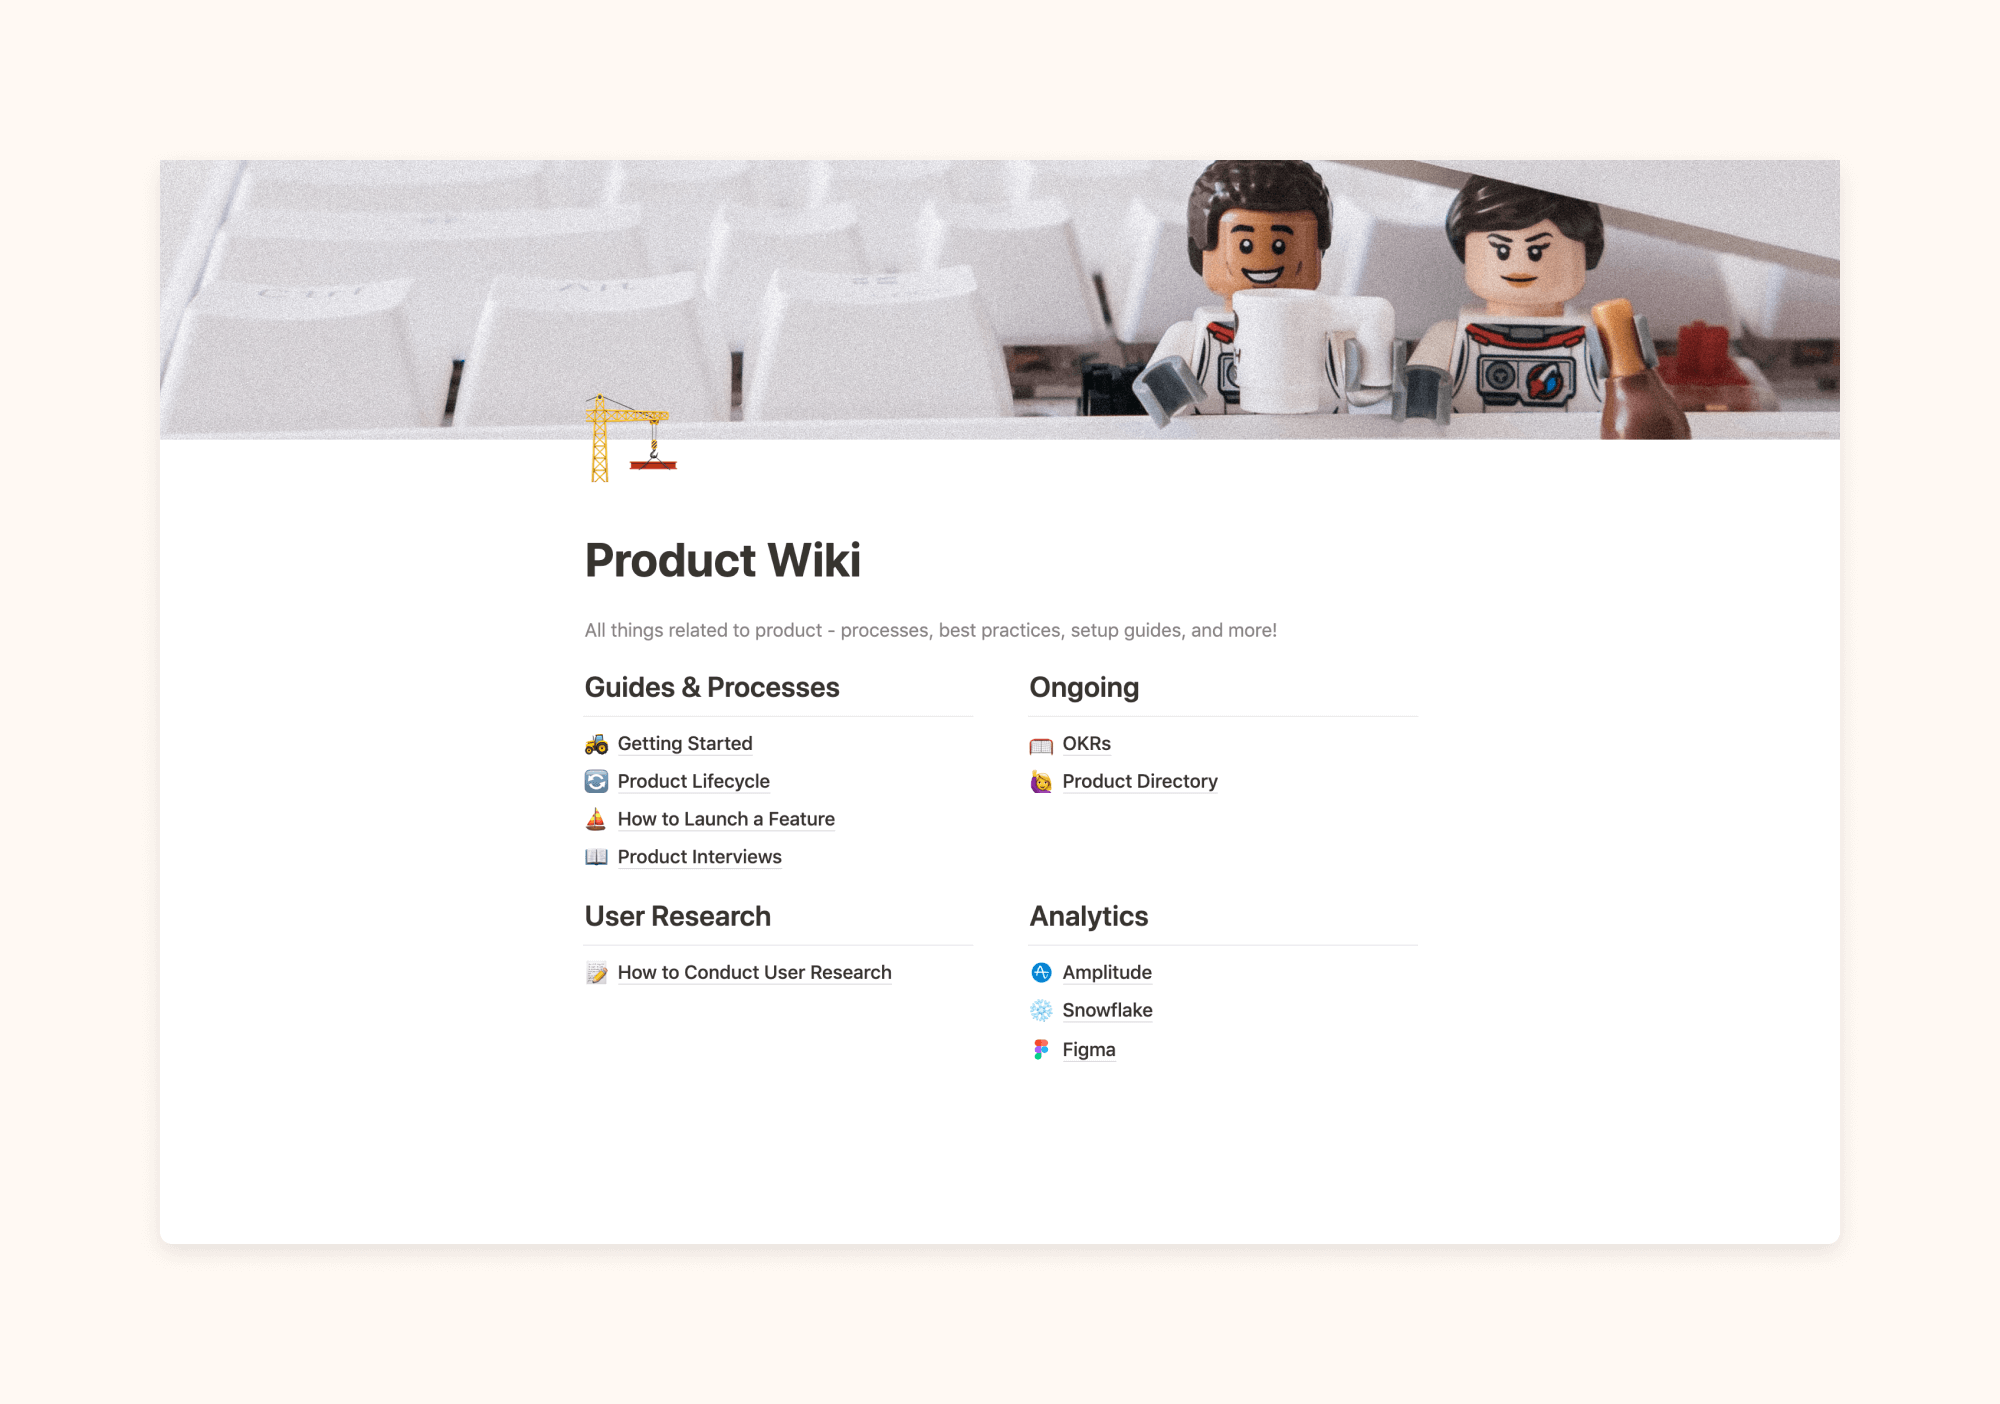 Product Wiki